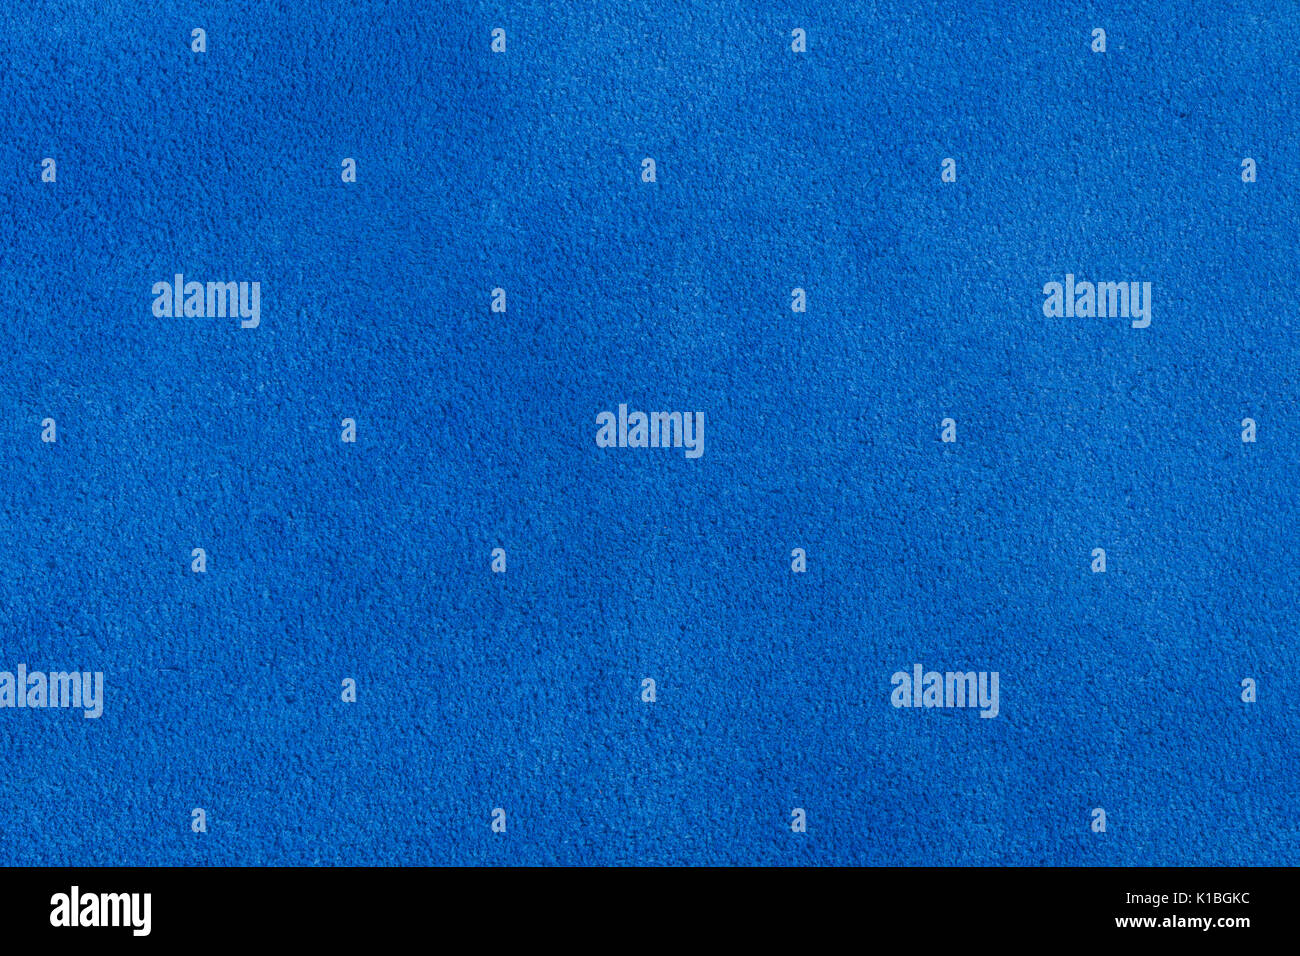 Blue velvet for background usage. High resolution photo. - Stock Image